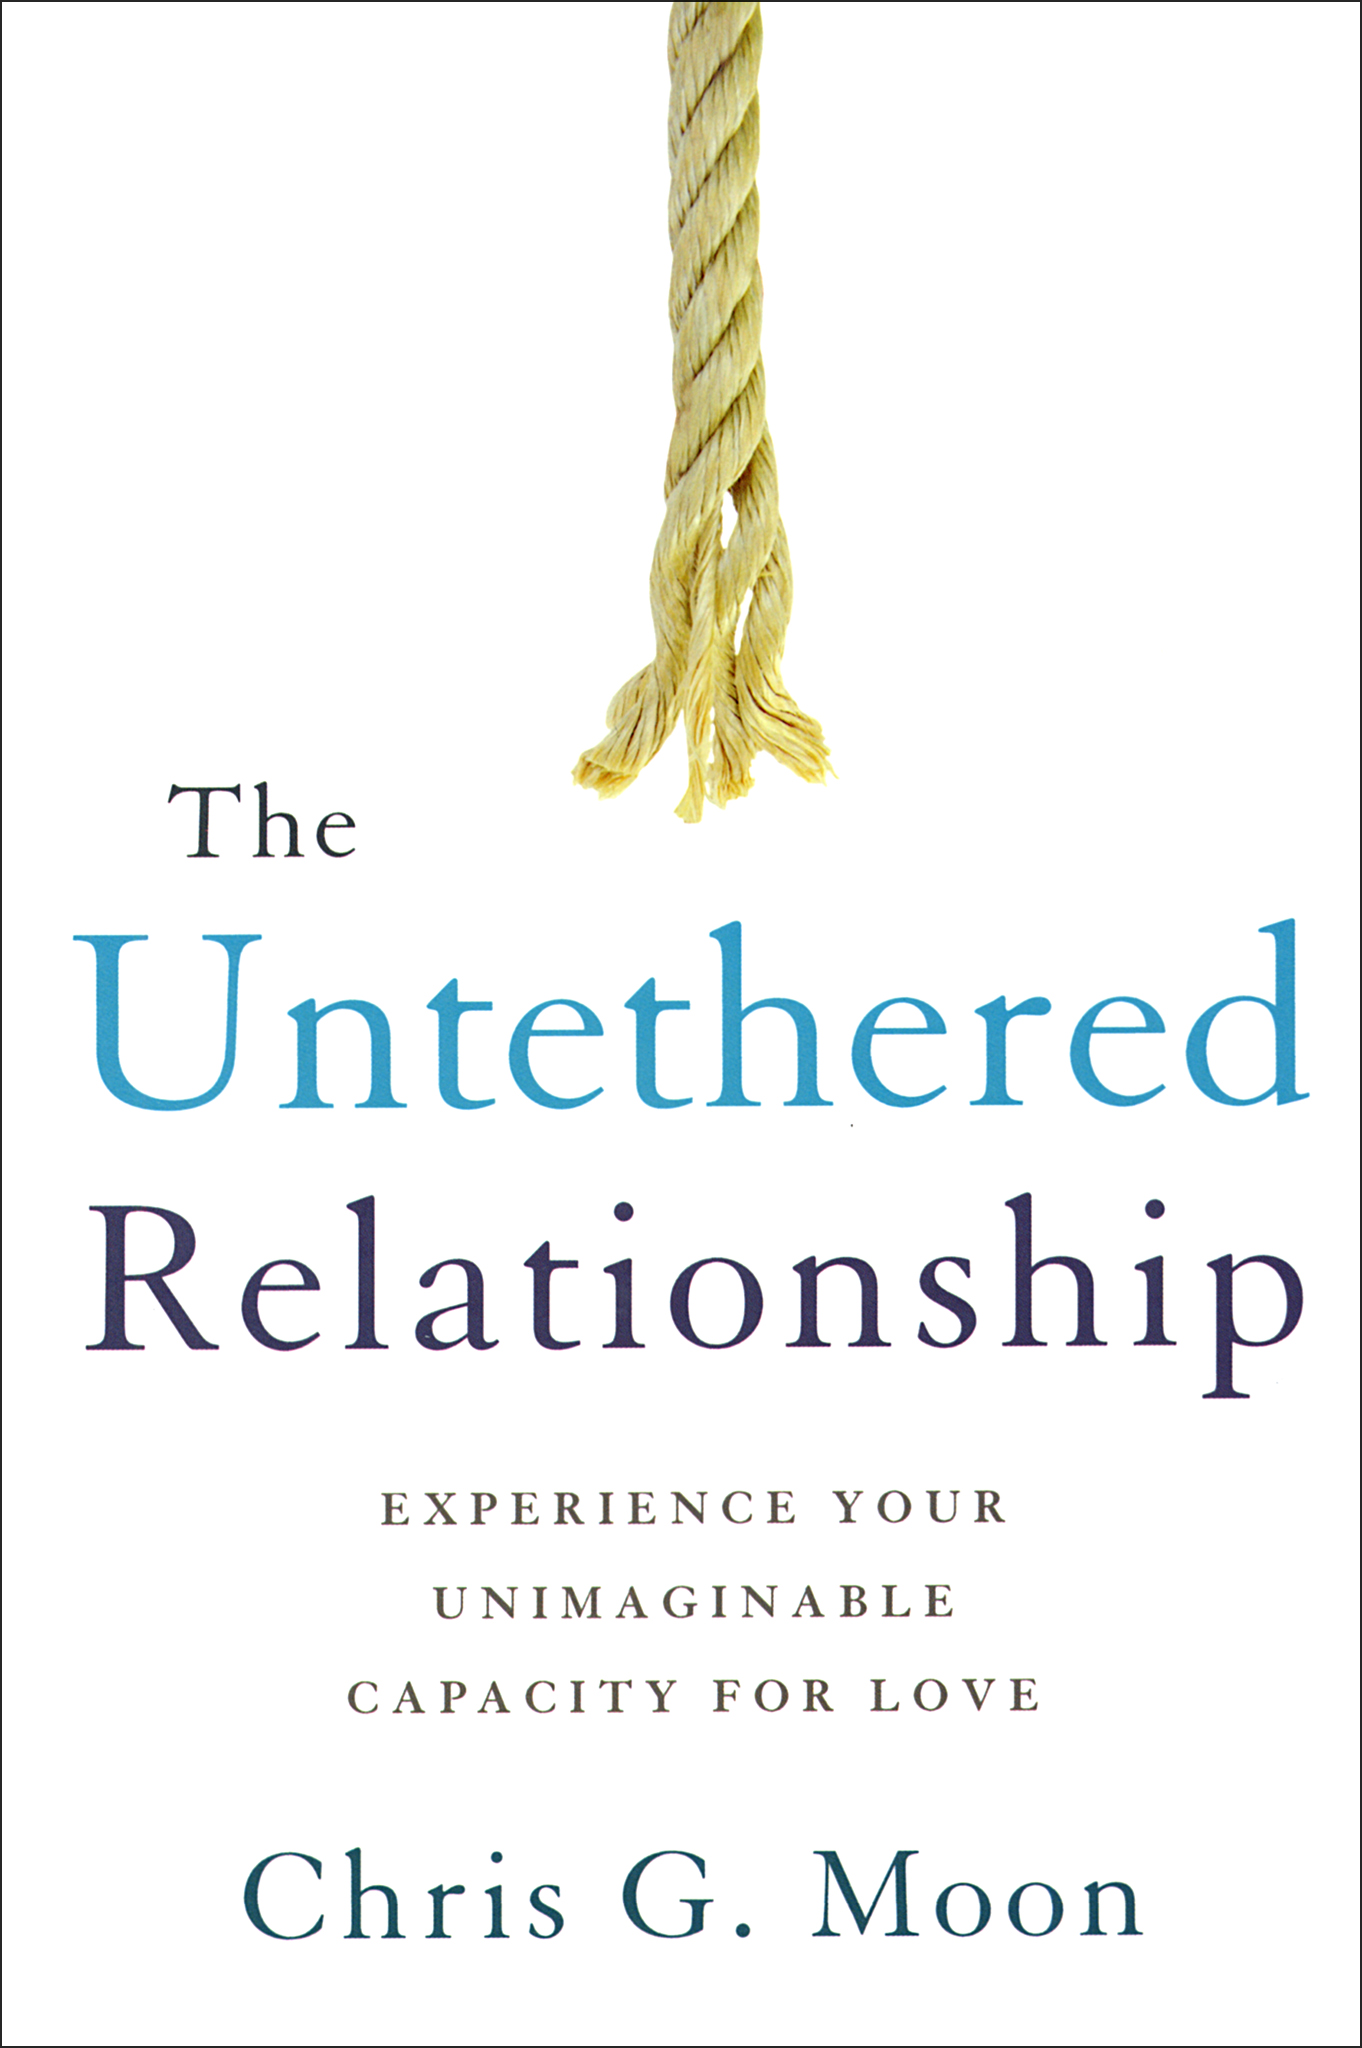 The Untethered Relationship